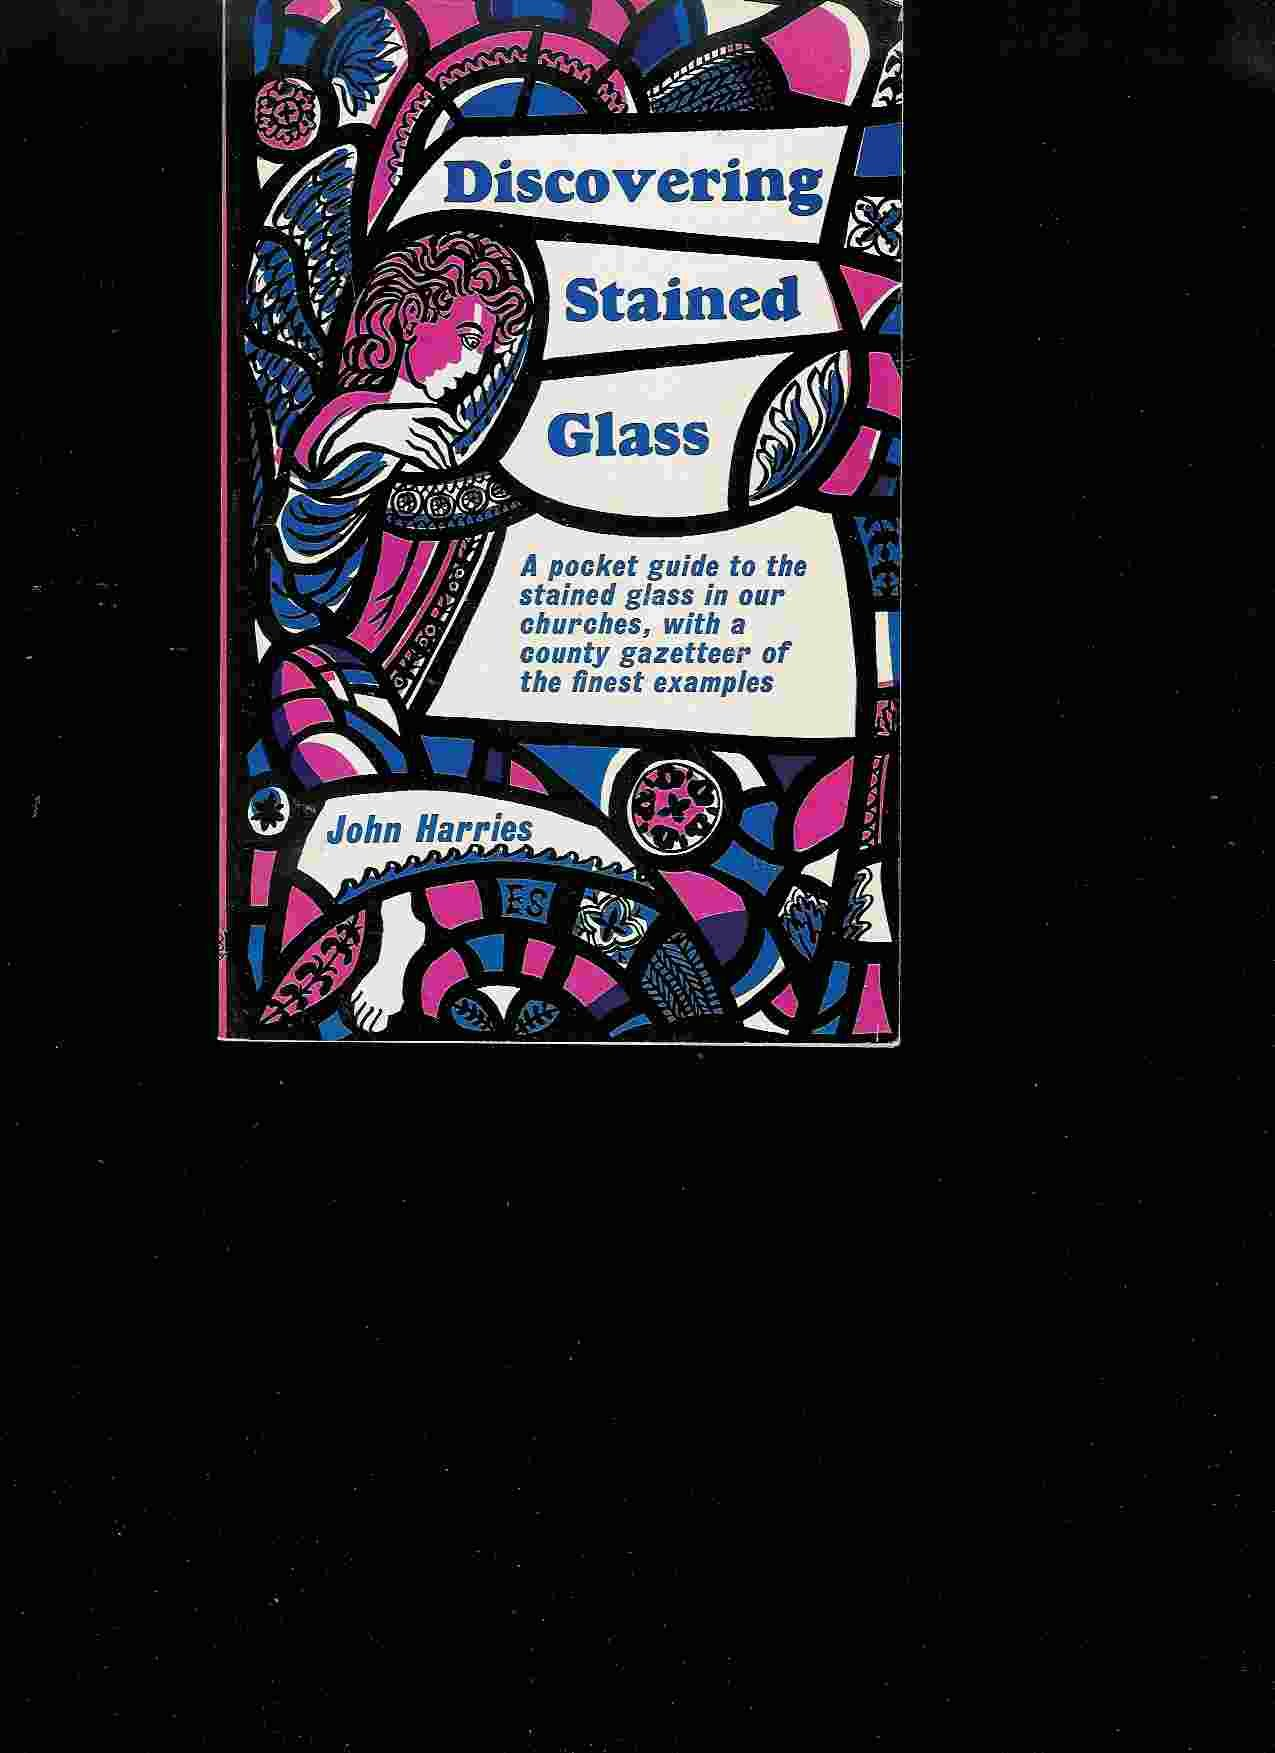 Discovering Stained Glass